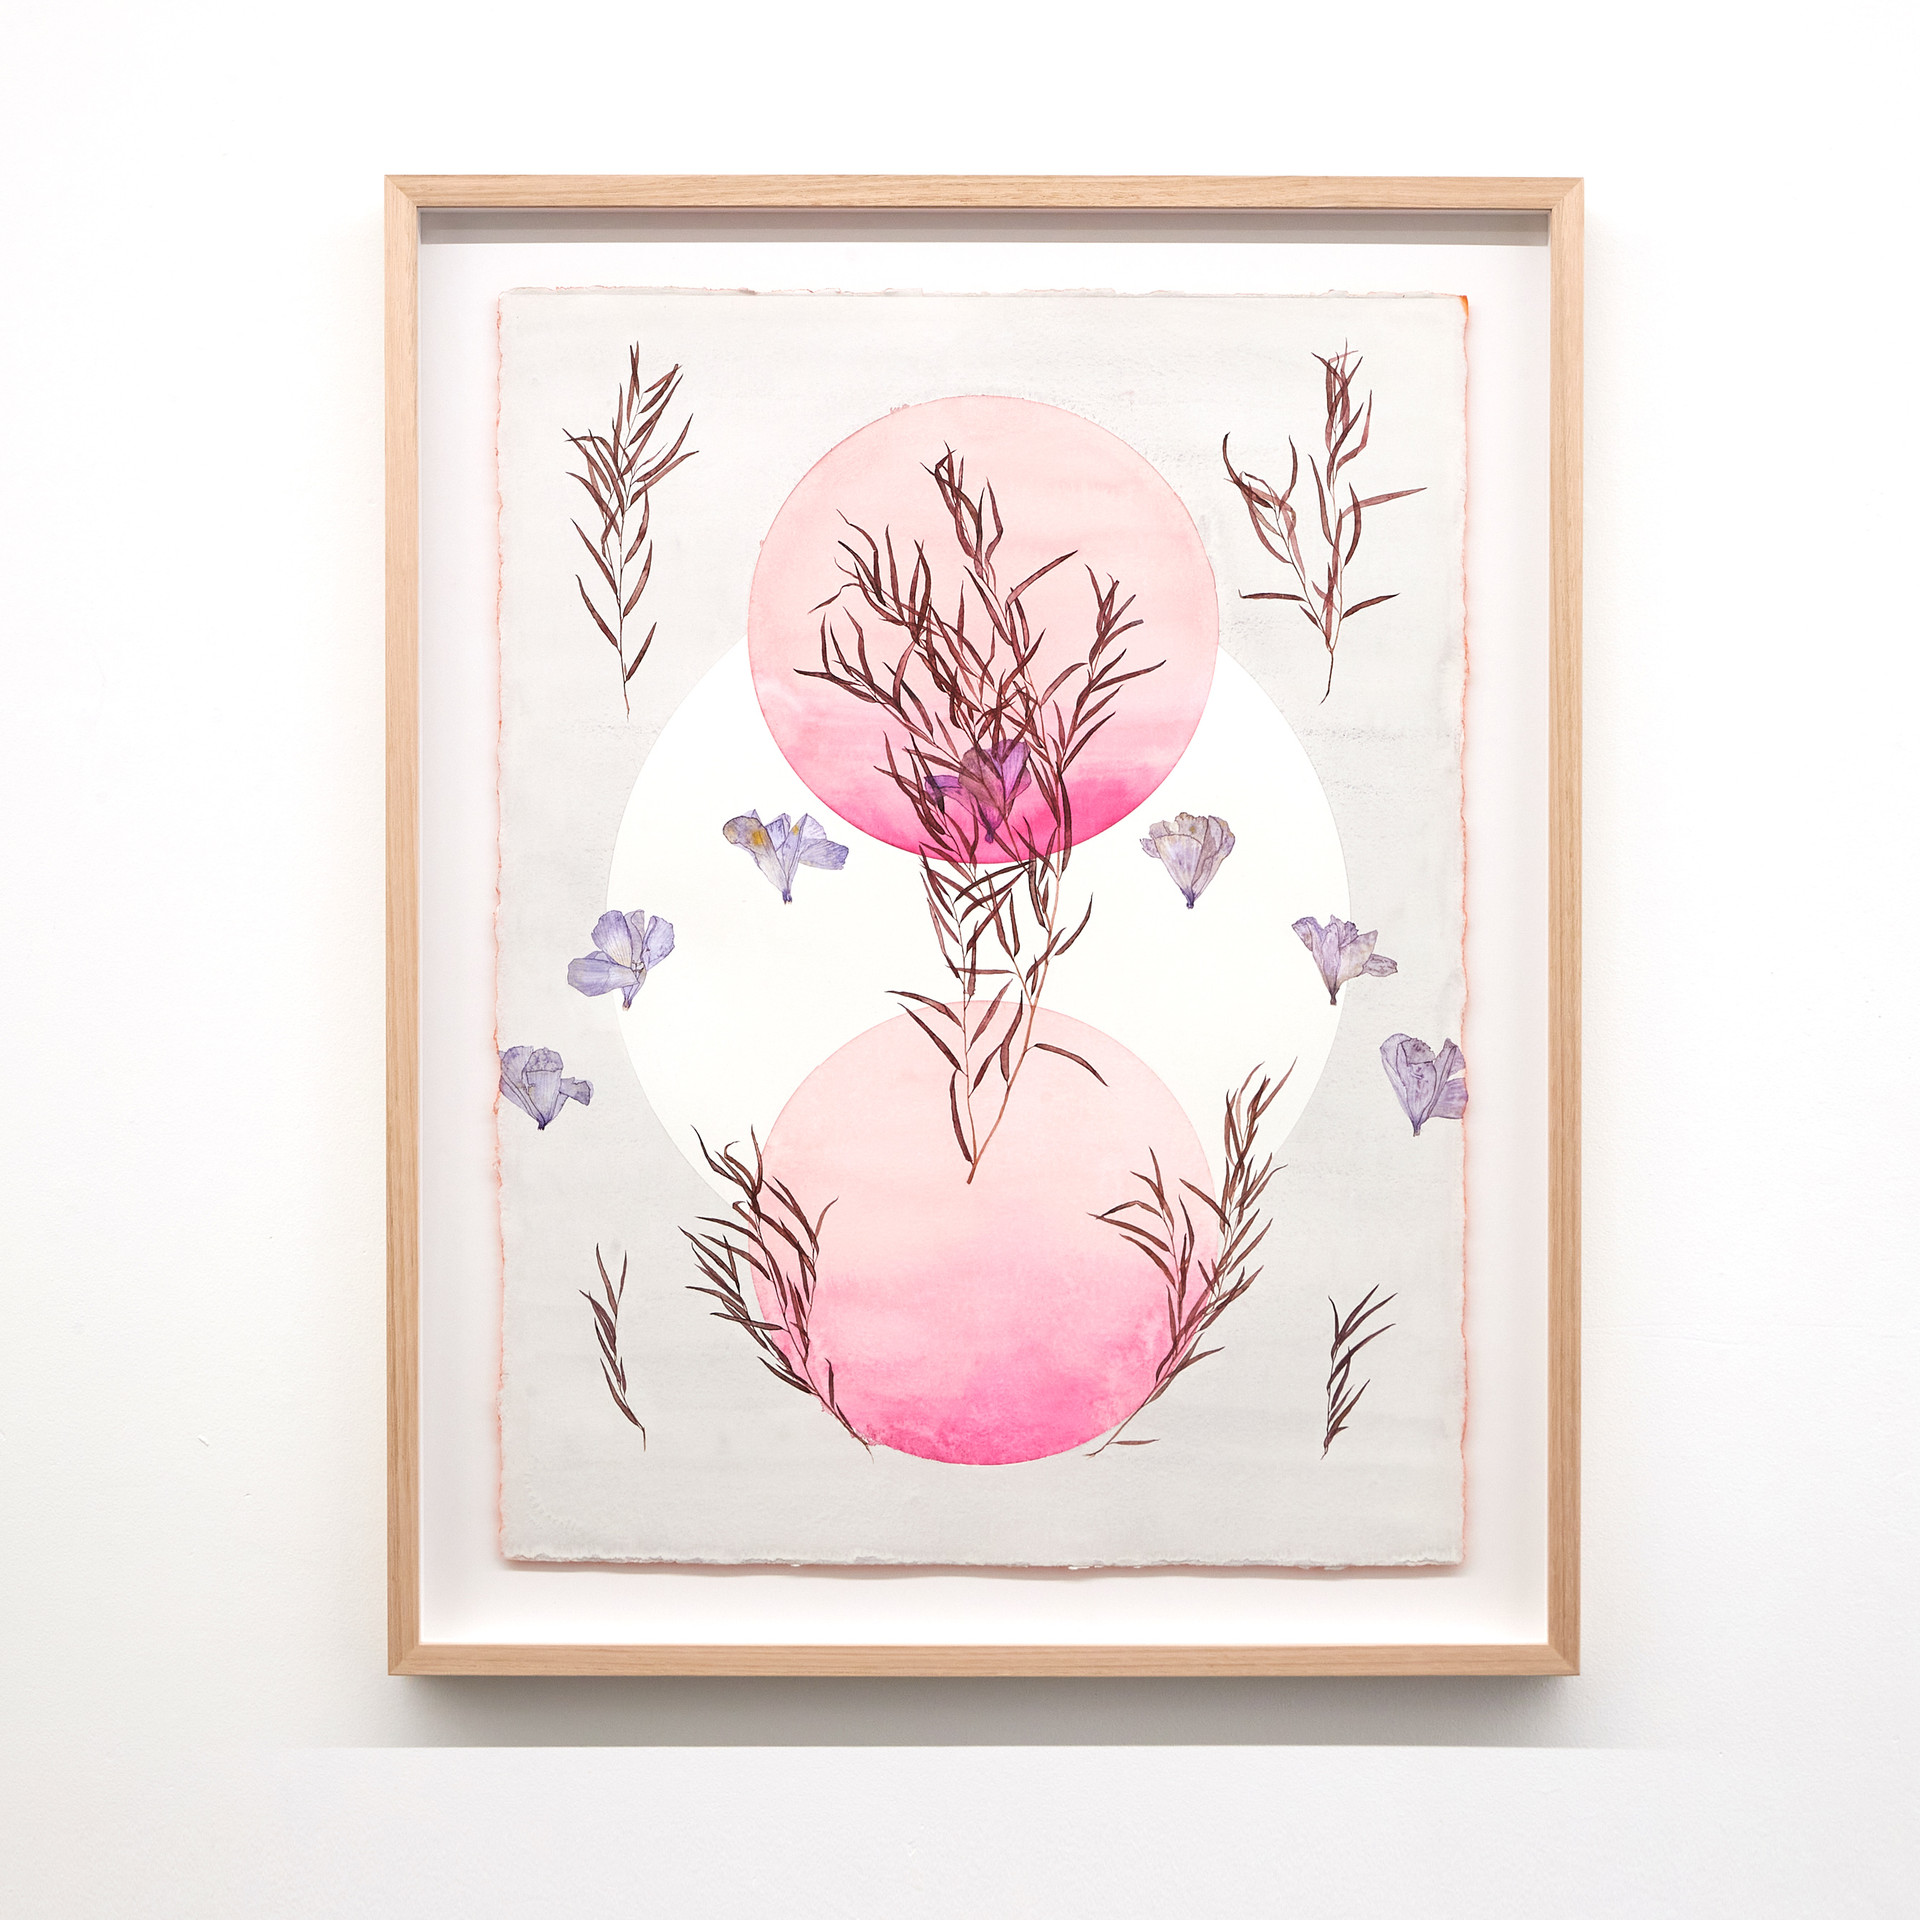 For Hilma af Klint and The Seven Sisters (Eventide) 2020 Watercolour on 640gsm cotton rag, sprayed en verso, 890mm H x 707mm W x 30mm D (framed dimensions).